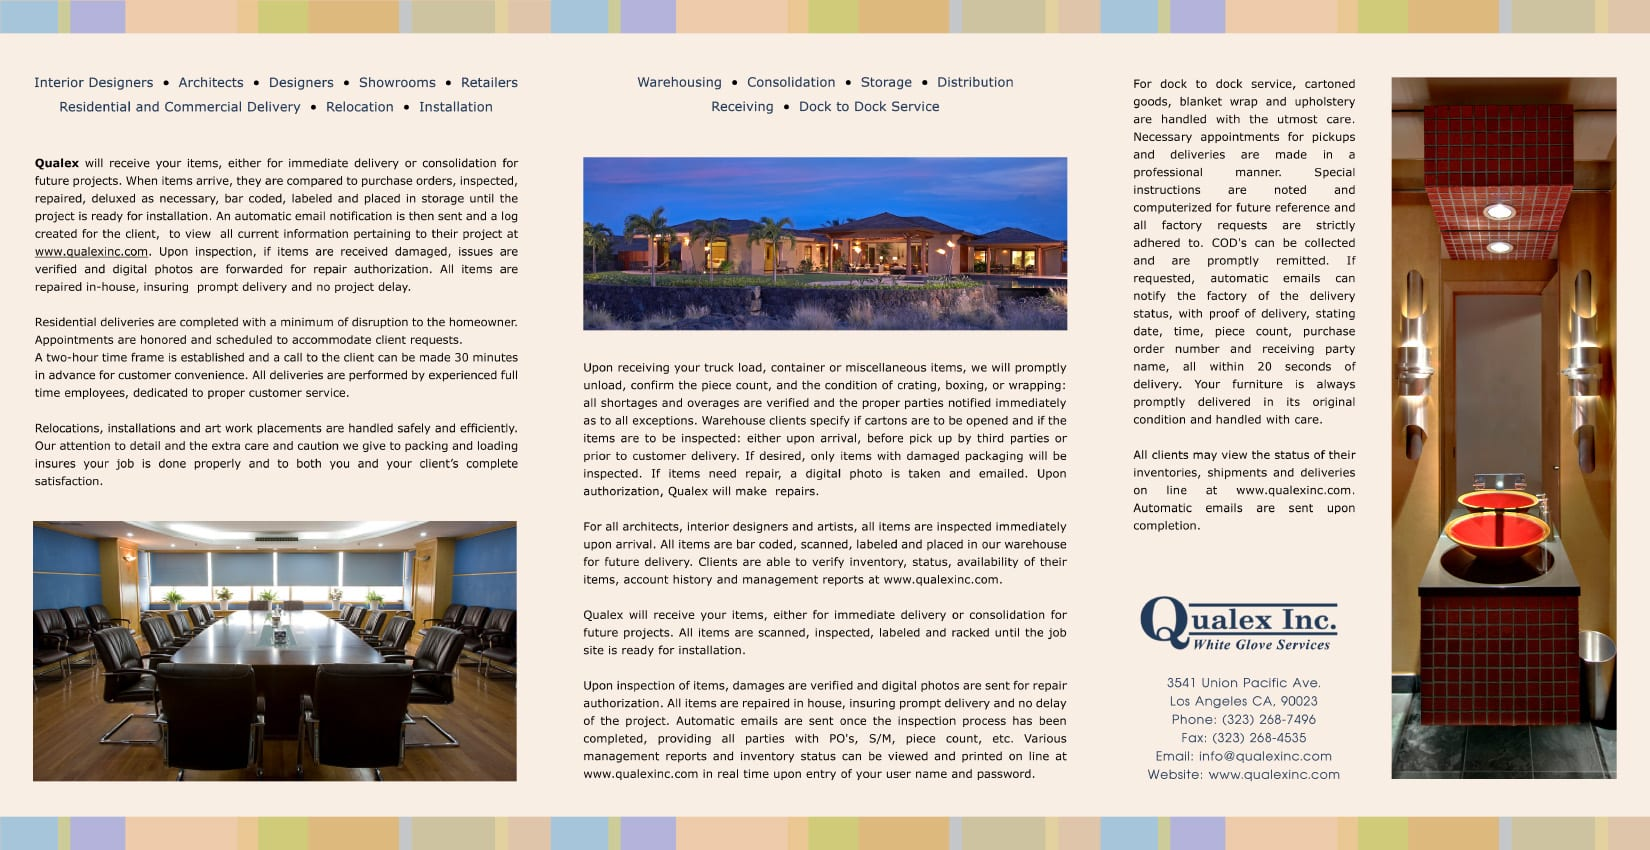 Qualex Tri-Fold Brochure Design Inside